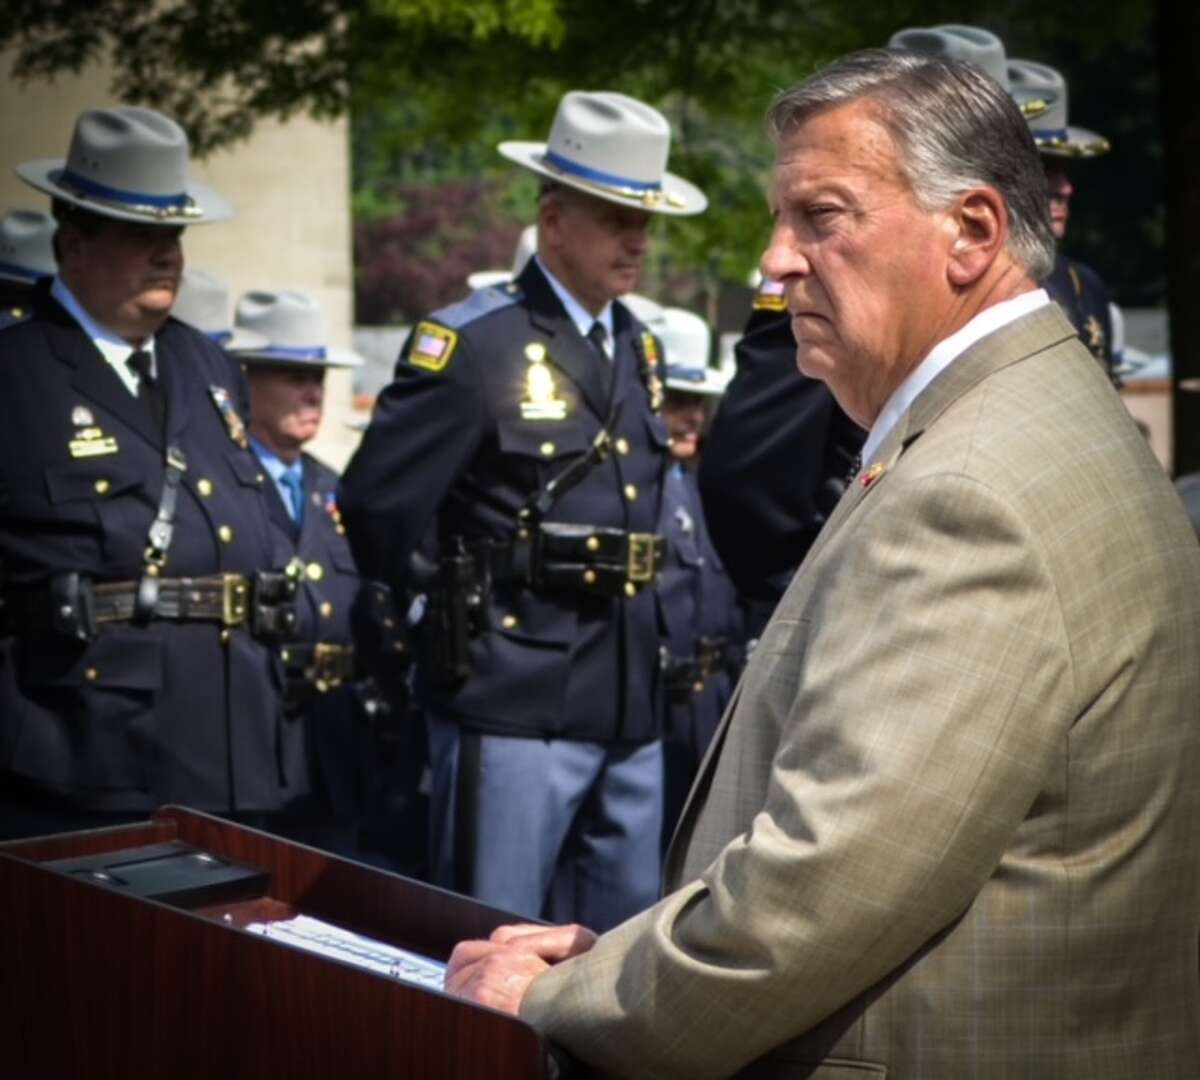 Butch Anderson rose up the ranks at the Dutchess County Sheriff's Office, where he started as deputy sheriff in 1970. He died Wednesday at his home in the Village of Pawling.